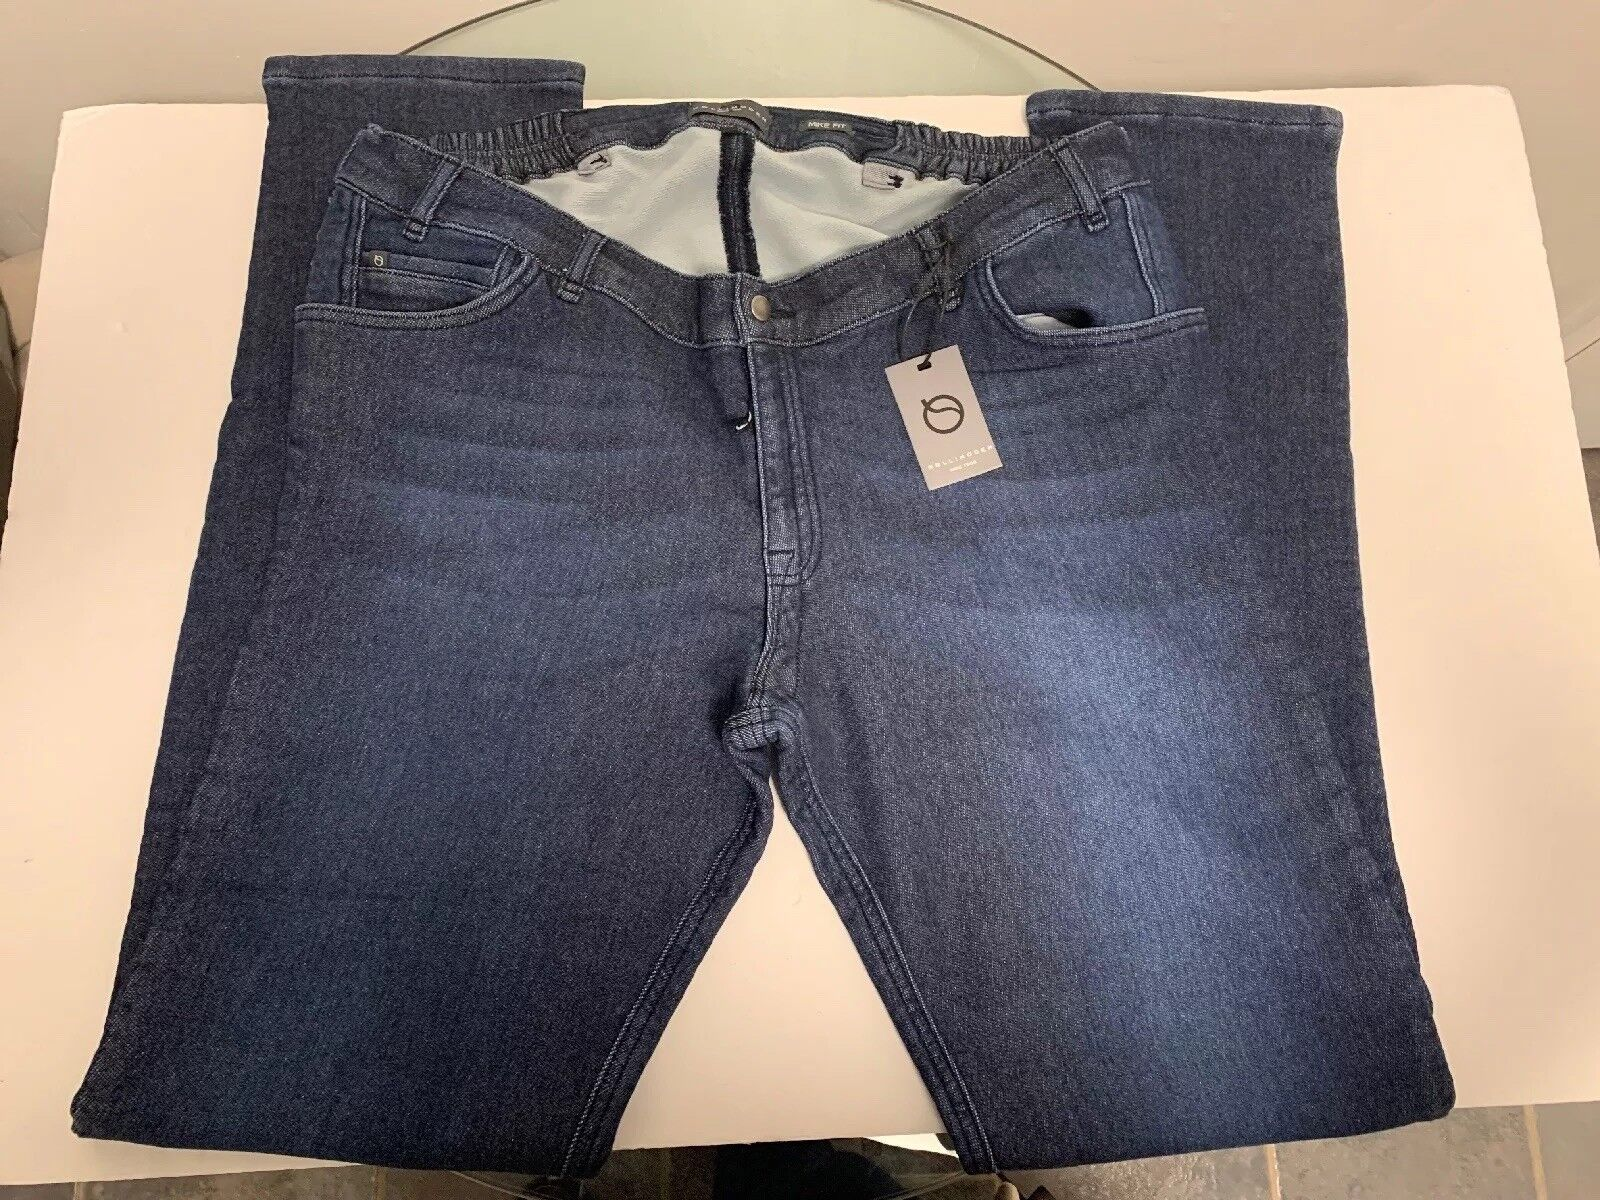 Rollimoden Jogg bluee Mike Jeans 58 X 38 Big & Tall NWT